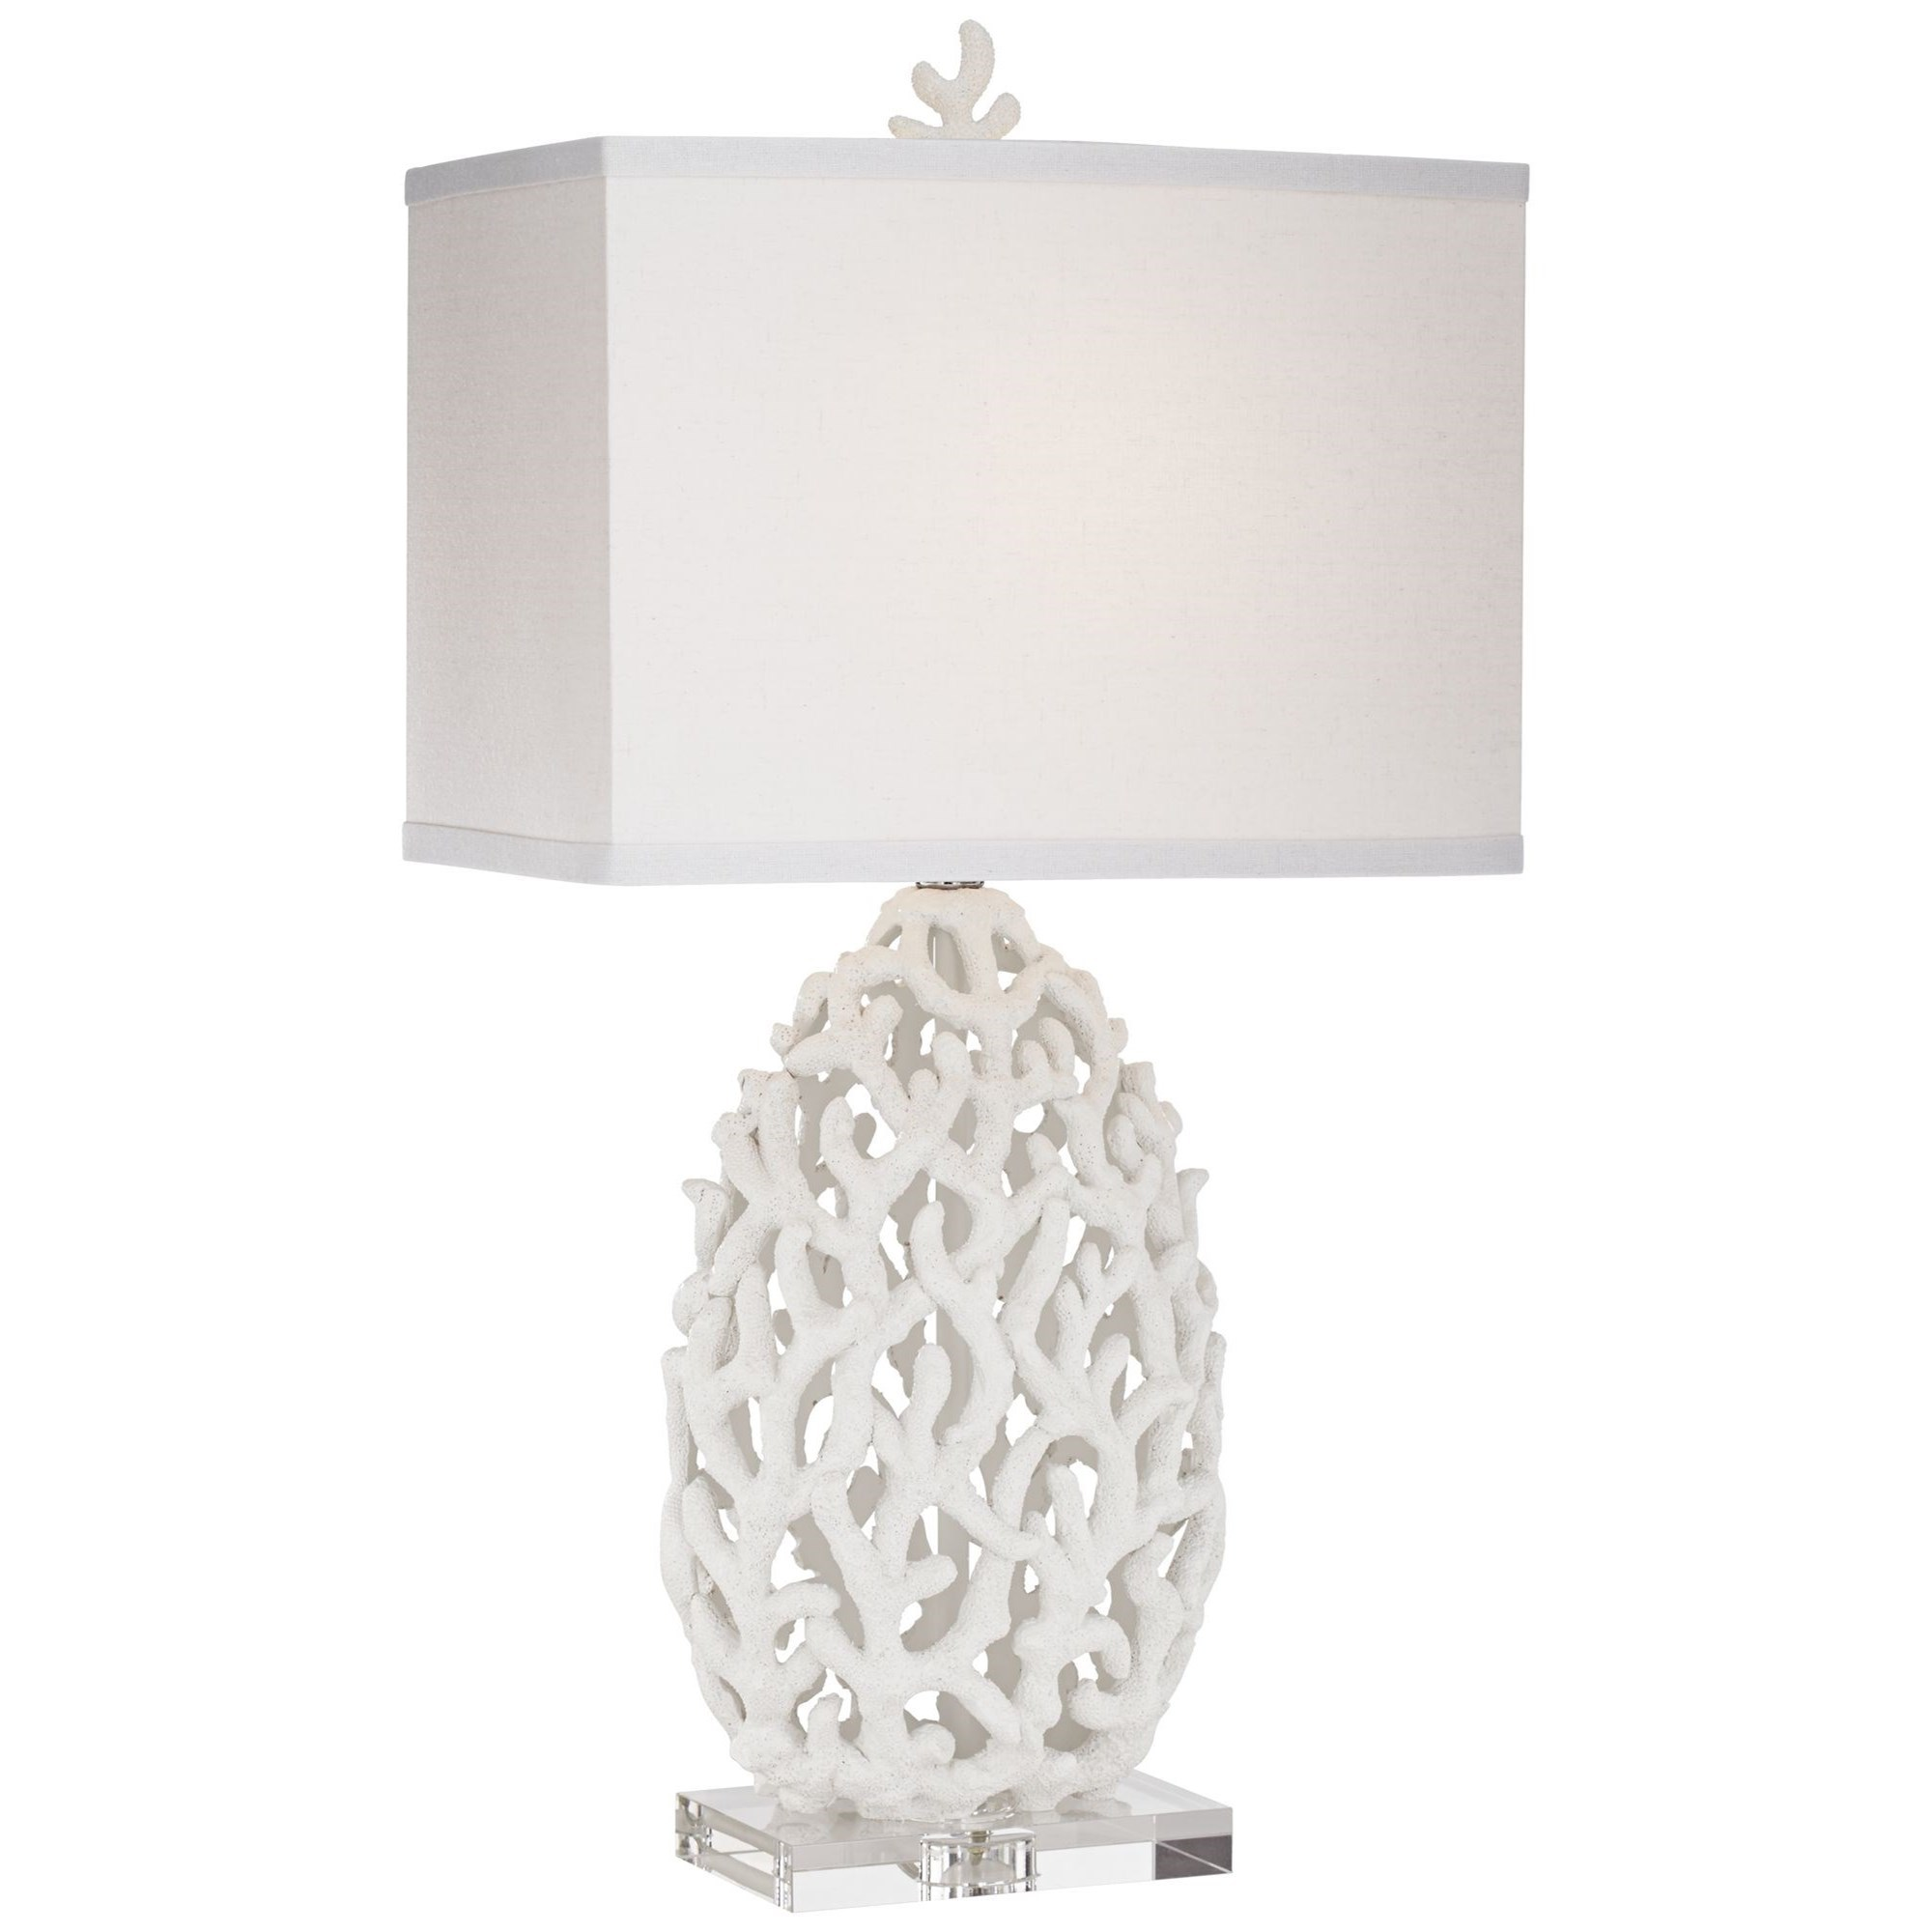 Table Lamps KIE White Resin Coral Lamp at Bennett's Furniture and Mattresses